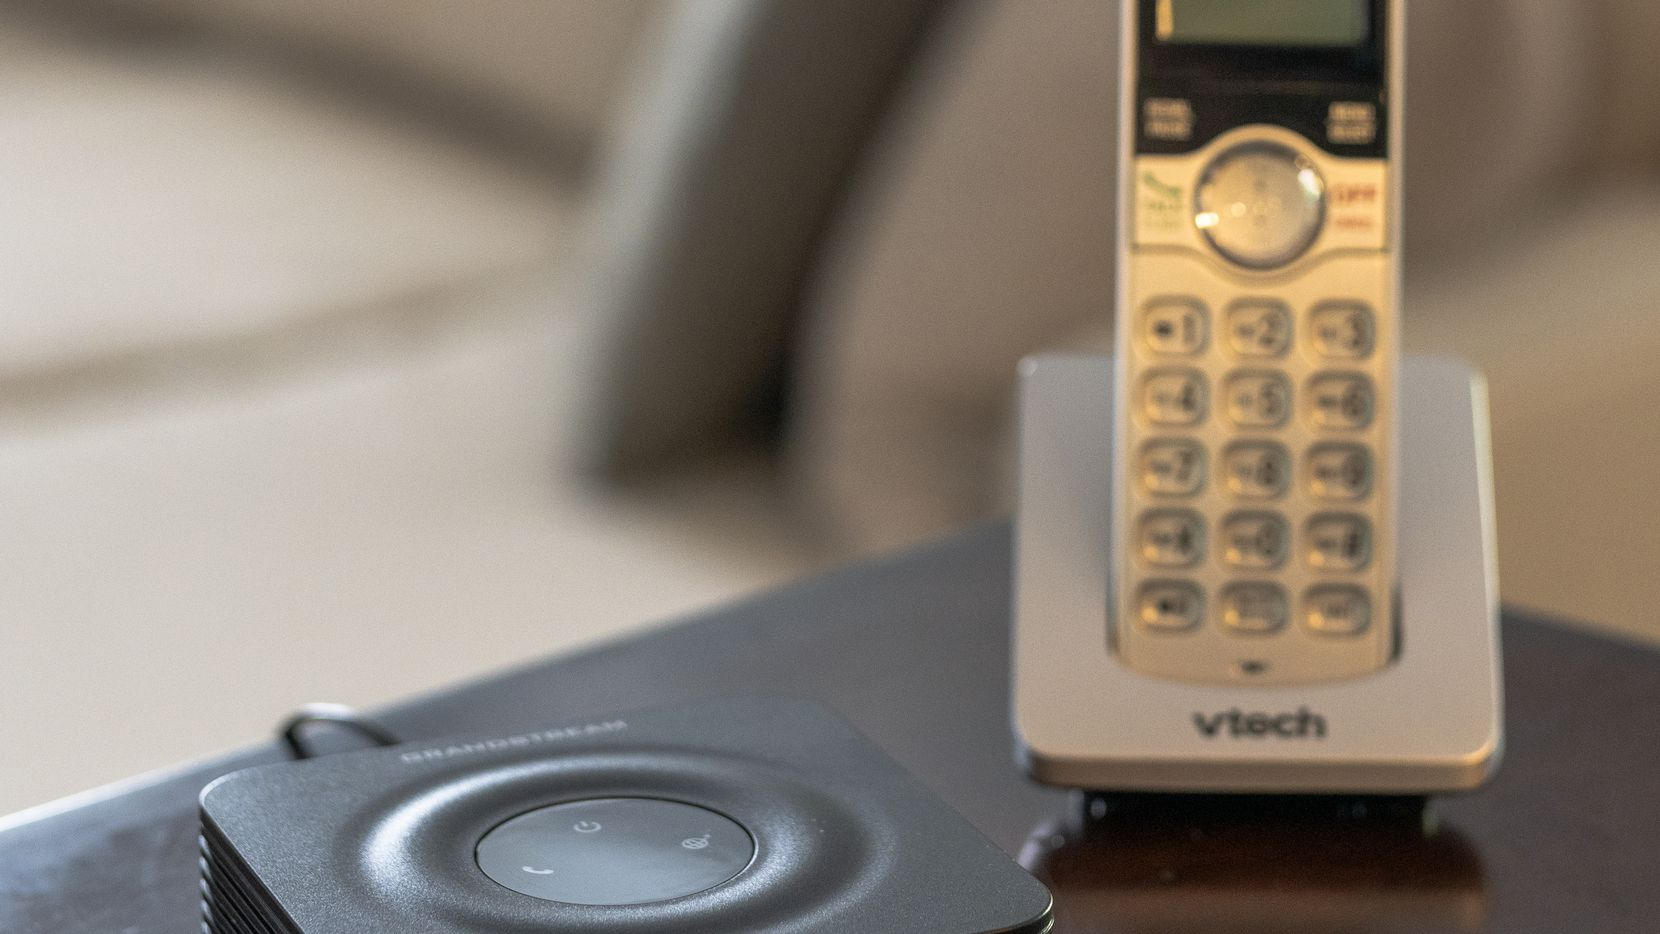 The Republic Wireless Extend Home Kit lets your home phone share your cell number.